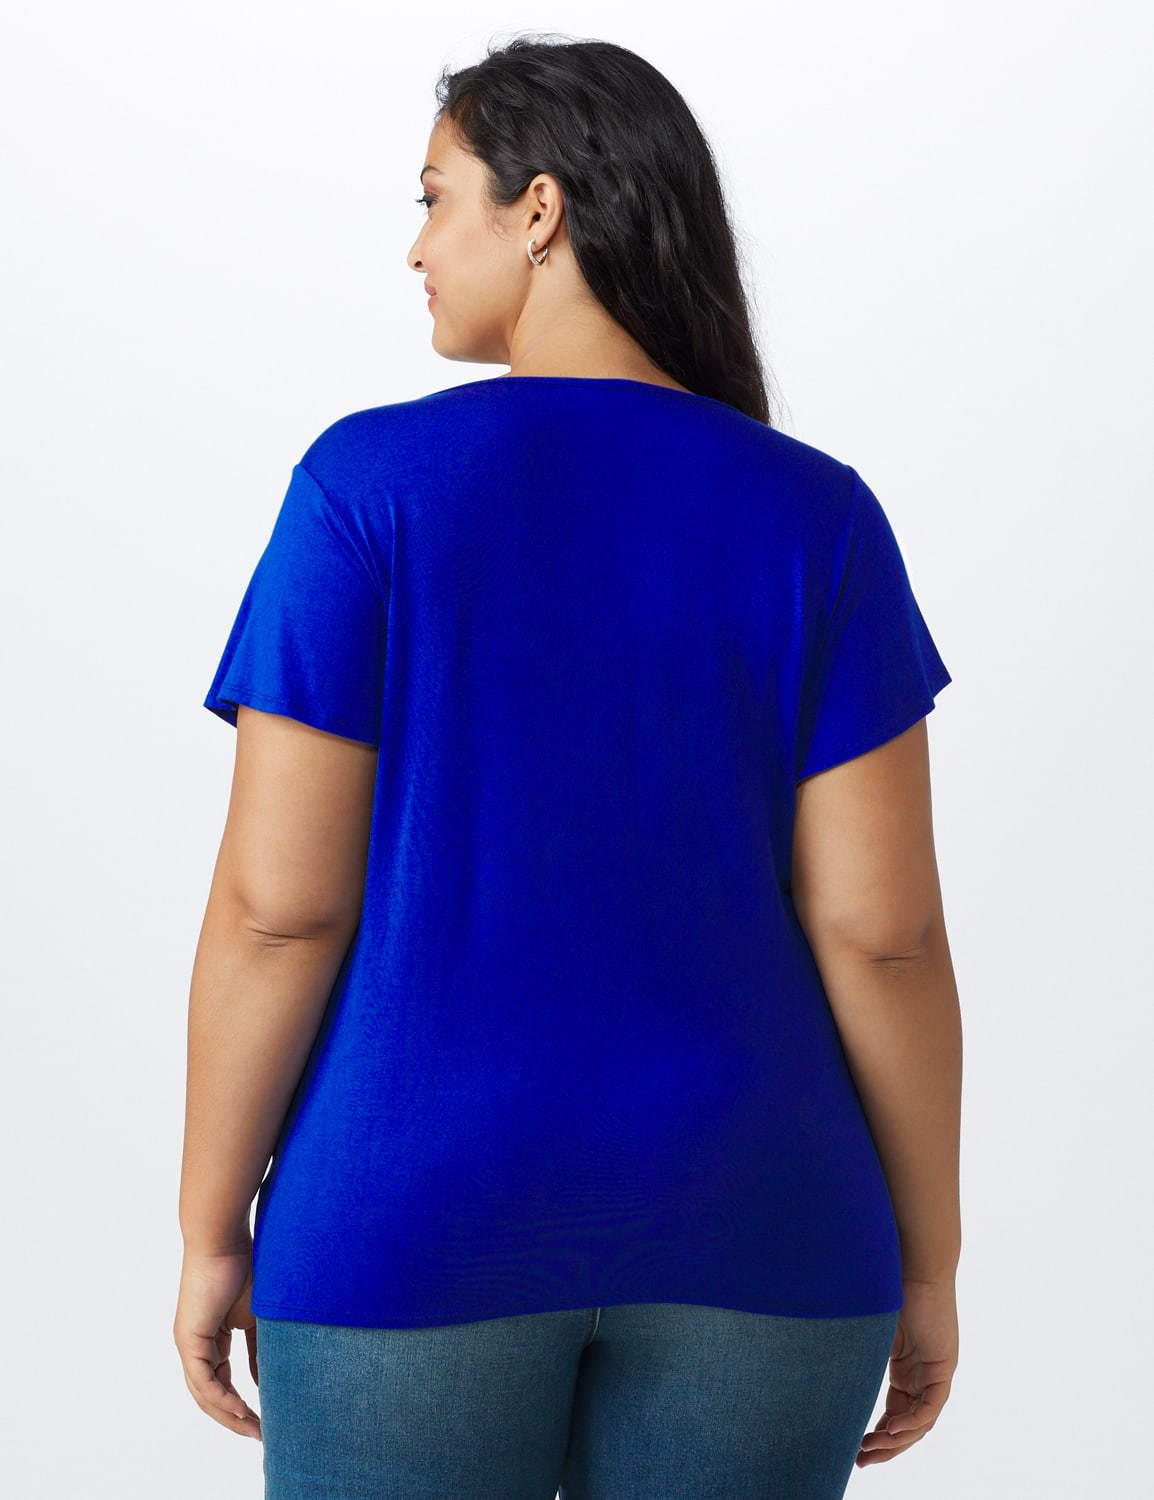 Flutter Sleeve Crochet Trim Knit Top - Royal - Back